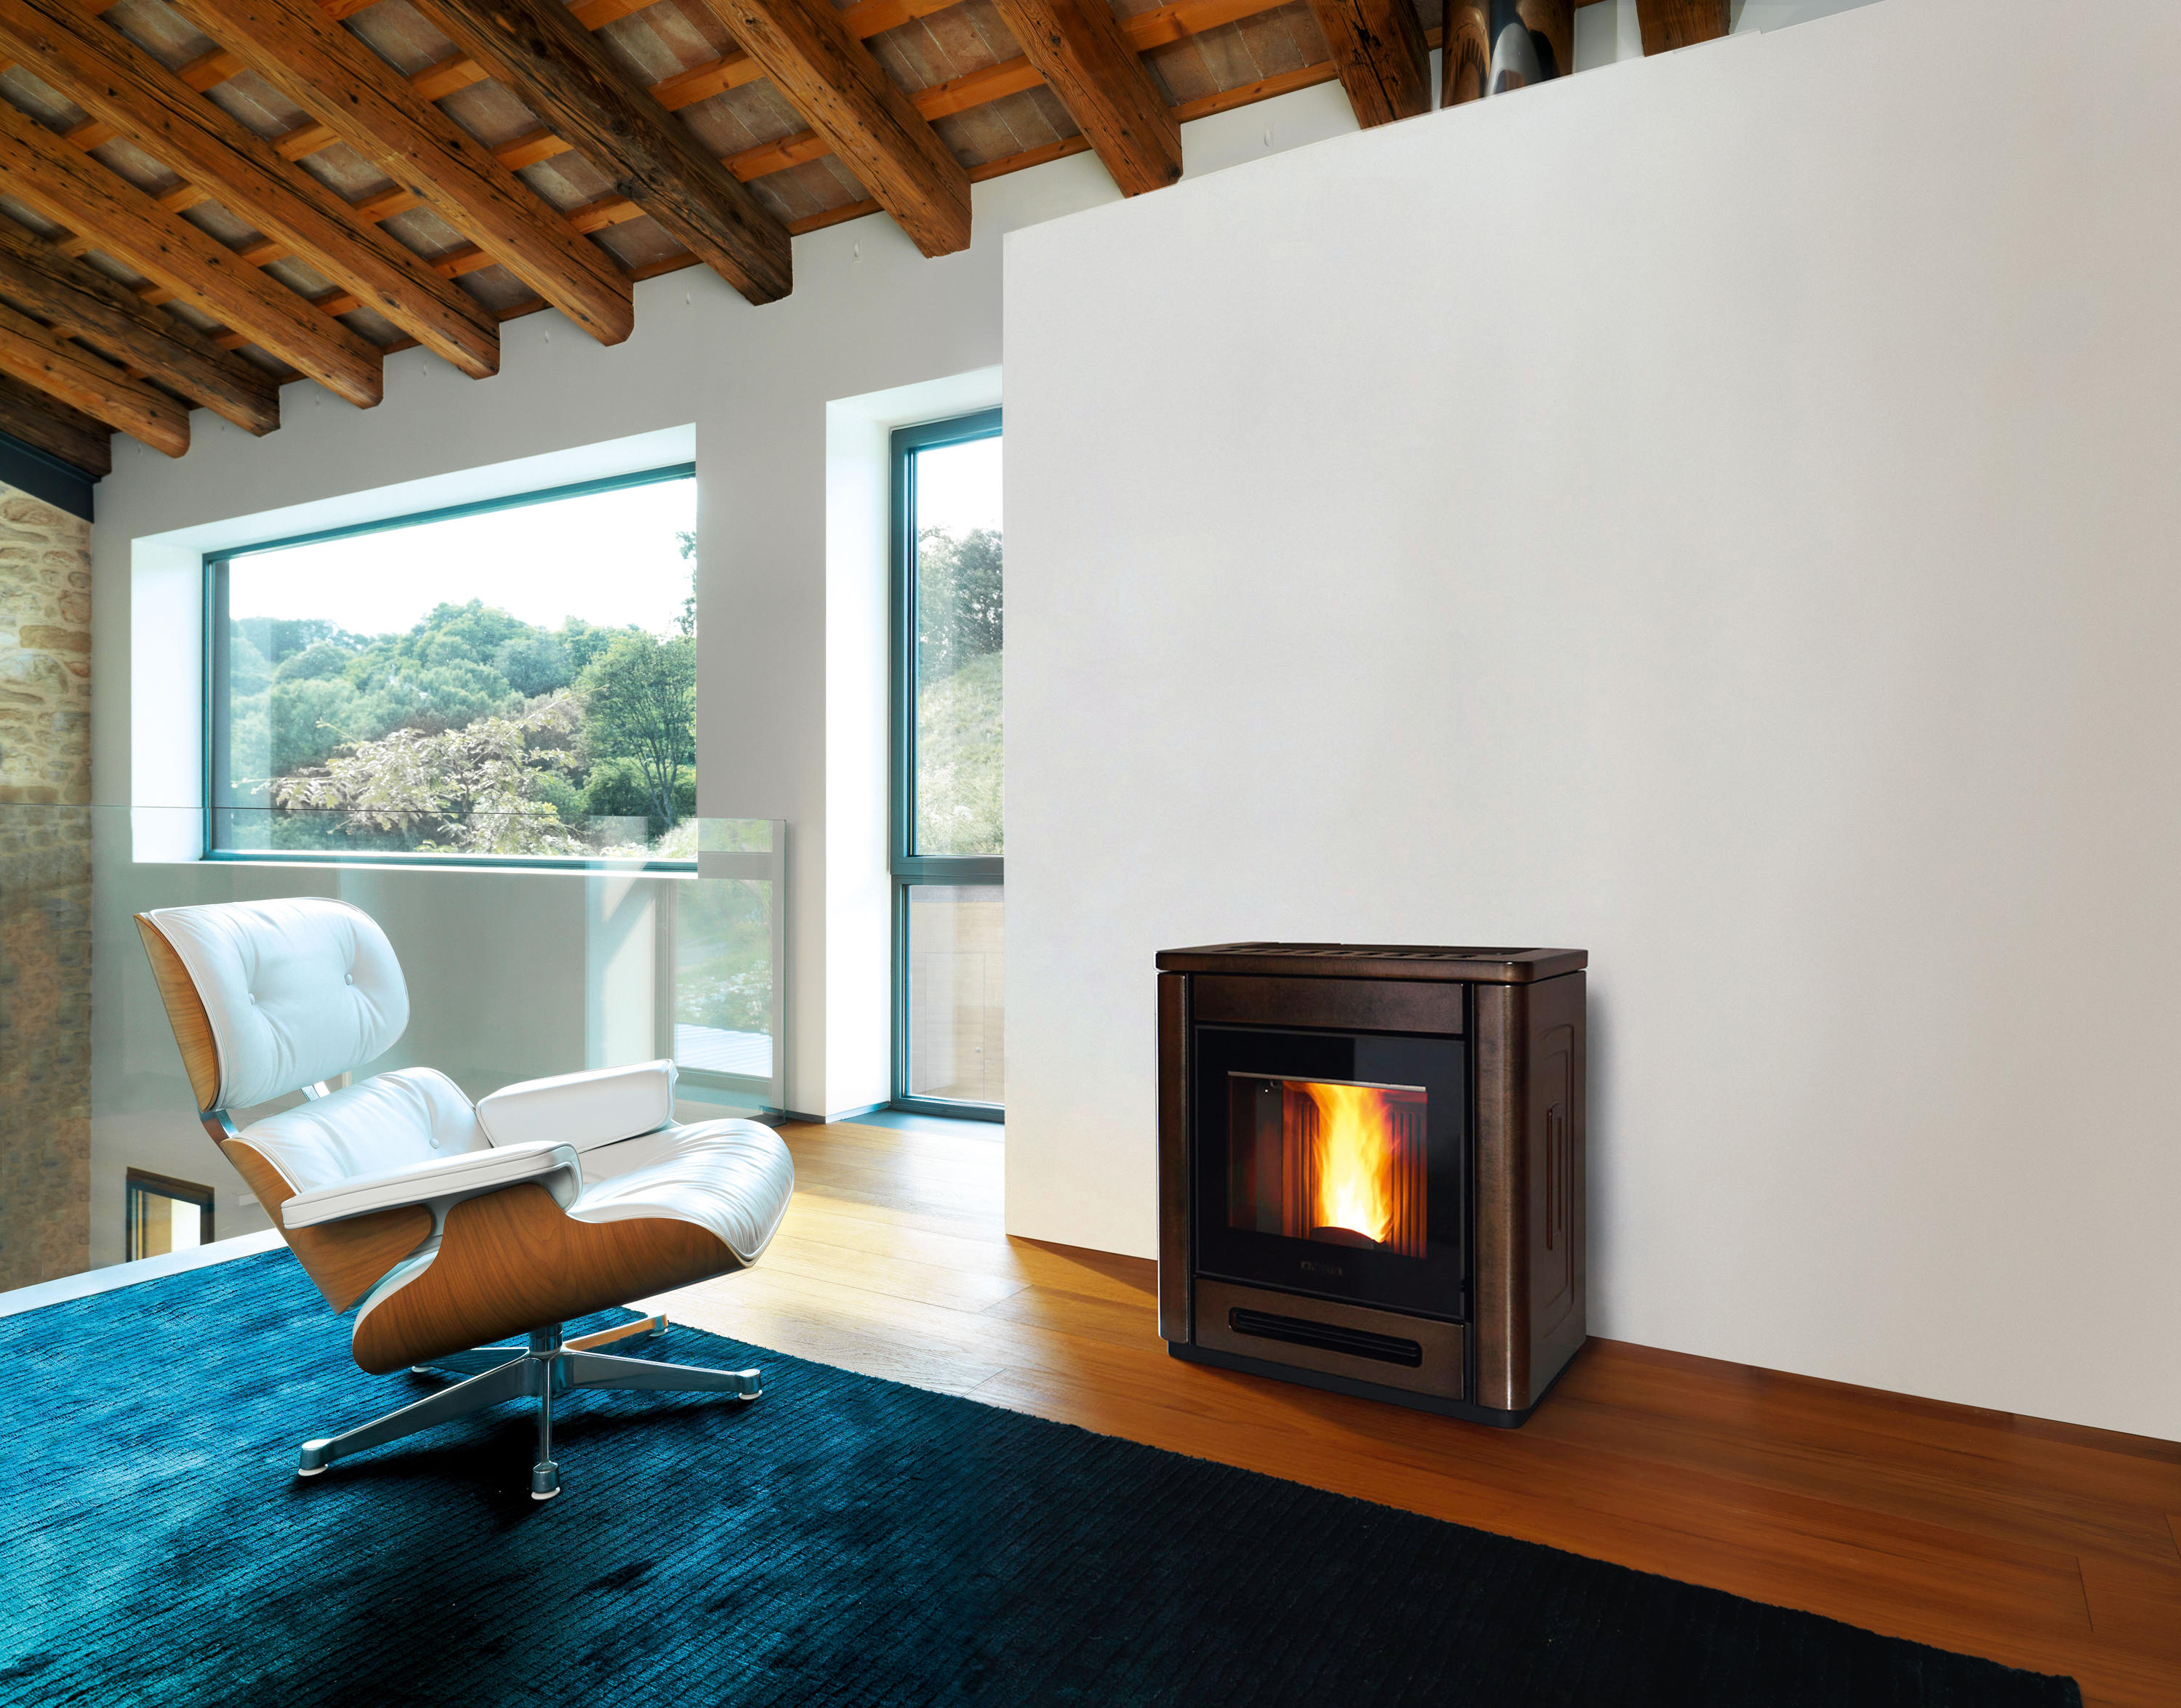 Poele A Pellet Rika Filo p944 - stoves from piazzetta | architonic